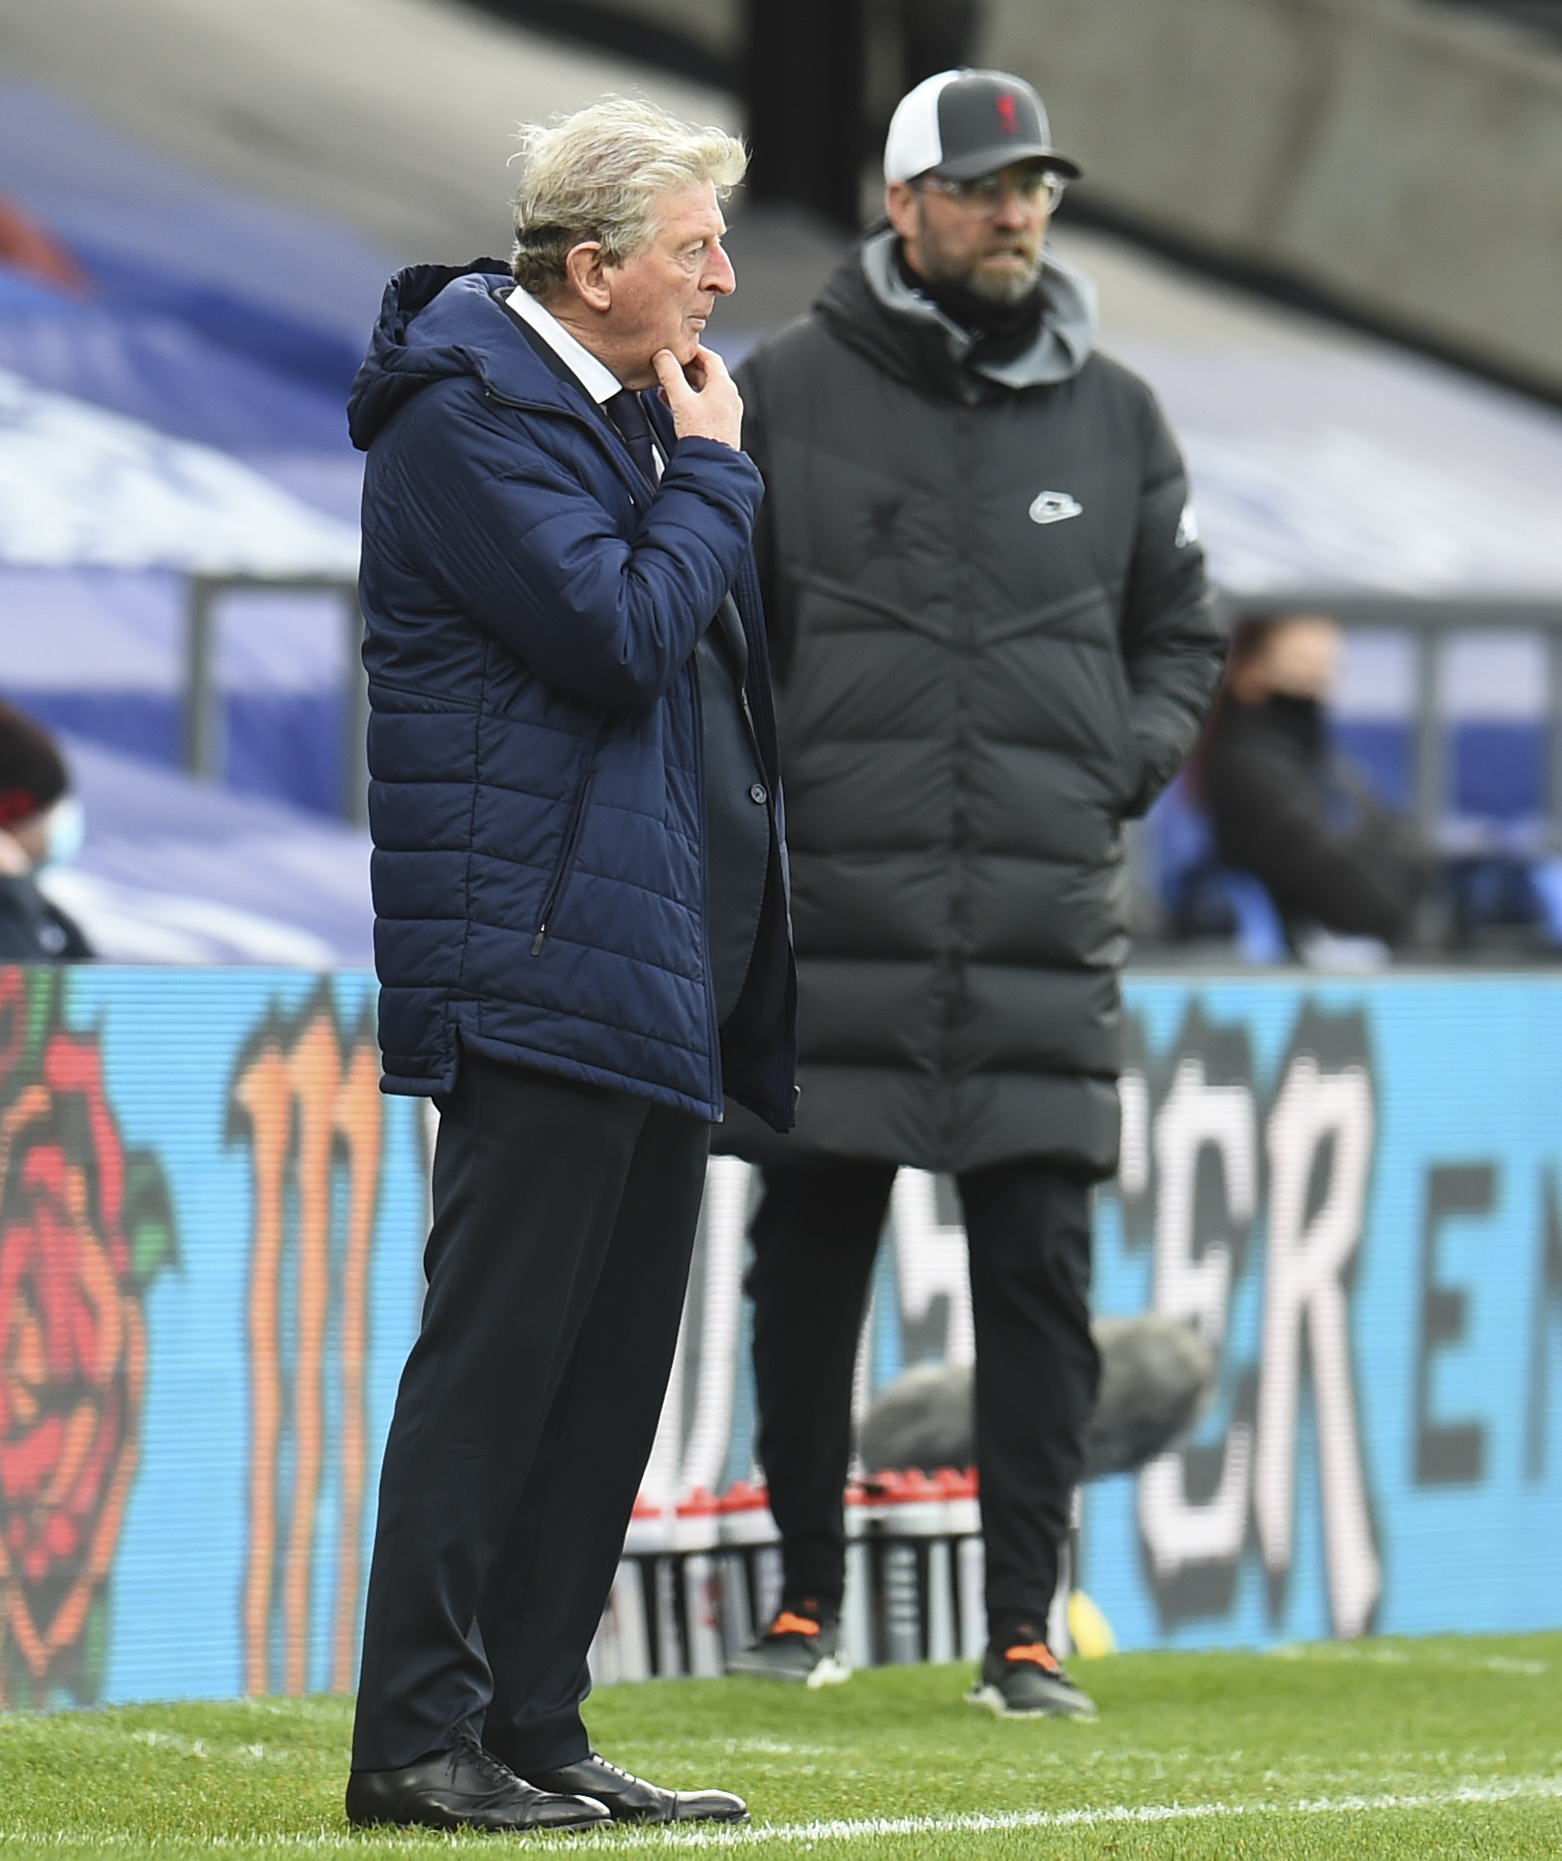 Crystal Palace's manager Roy Hodgson (L) and Liverpool's manager Jürgen Klopp during the FA Premier League match between Crystal Palace FC and Liverpool FC at Selhurst Park